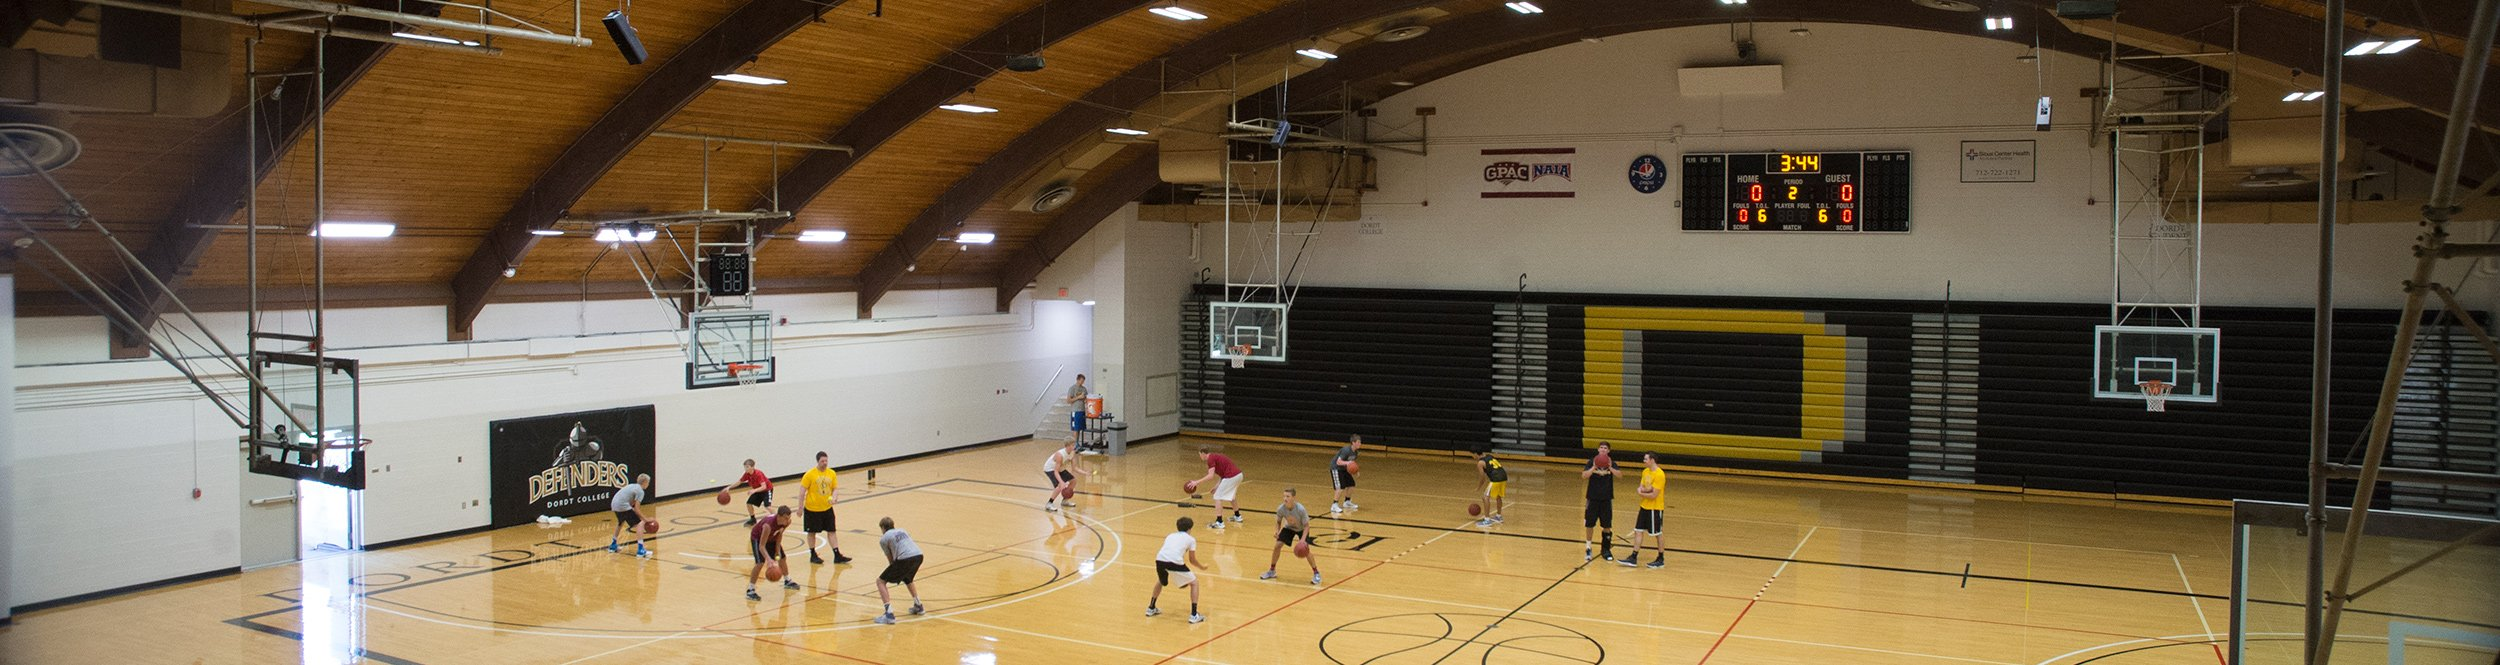 People play basketball in the De Witt Gymnasium at Dordt.